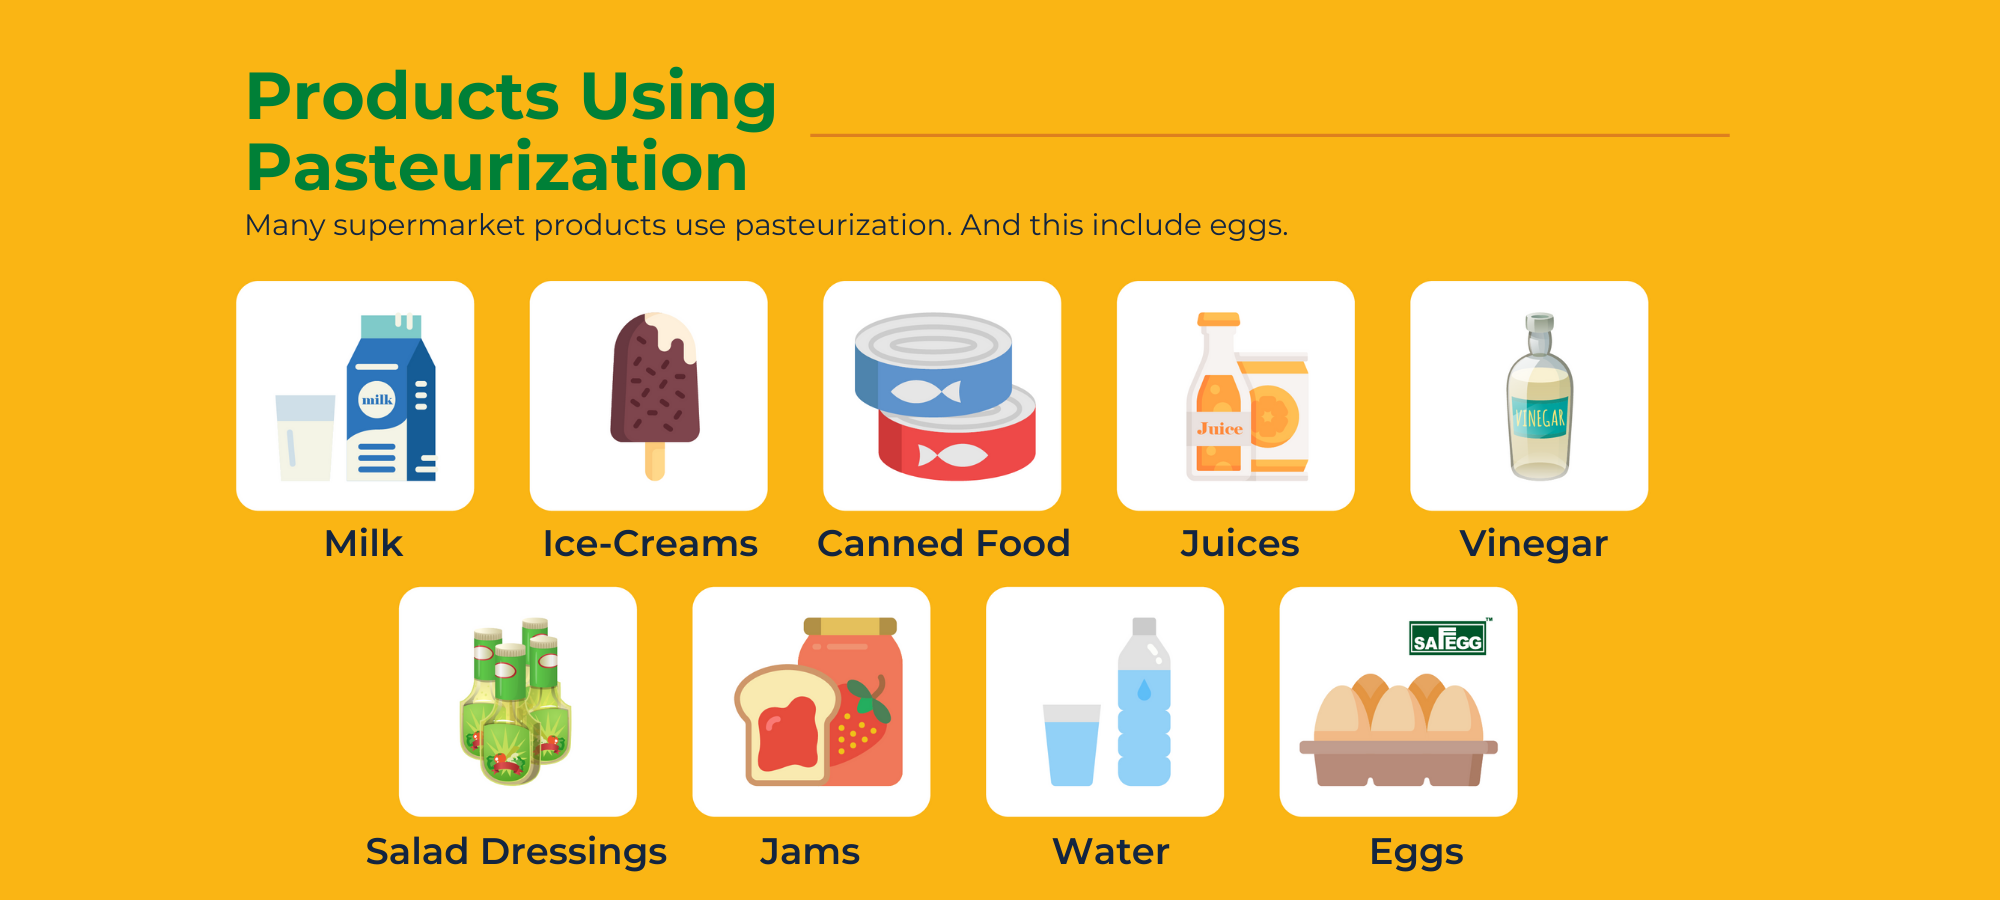 Products Using Pasteurization